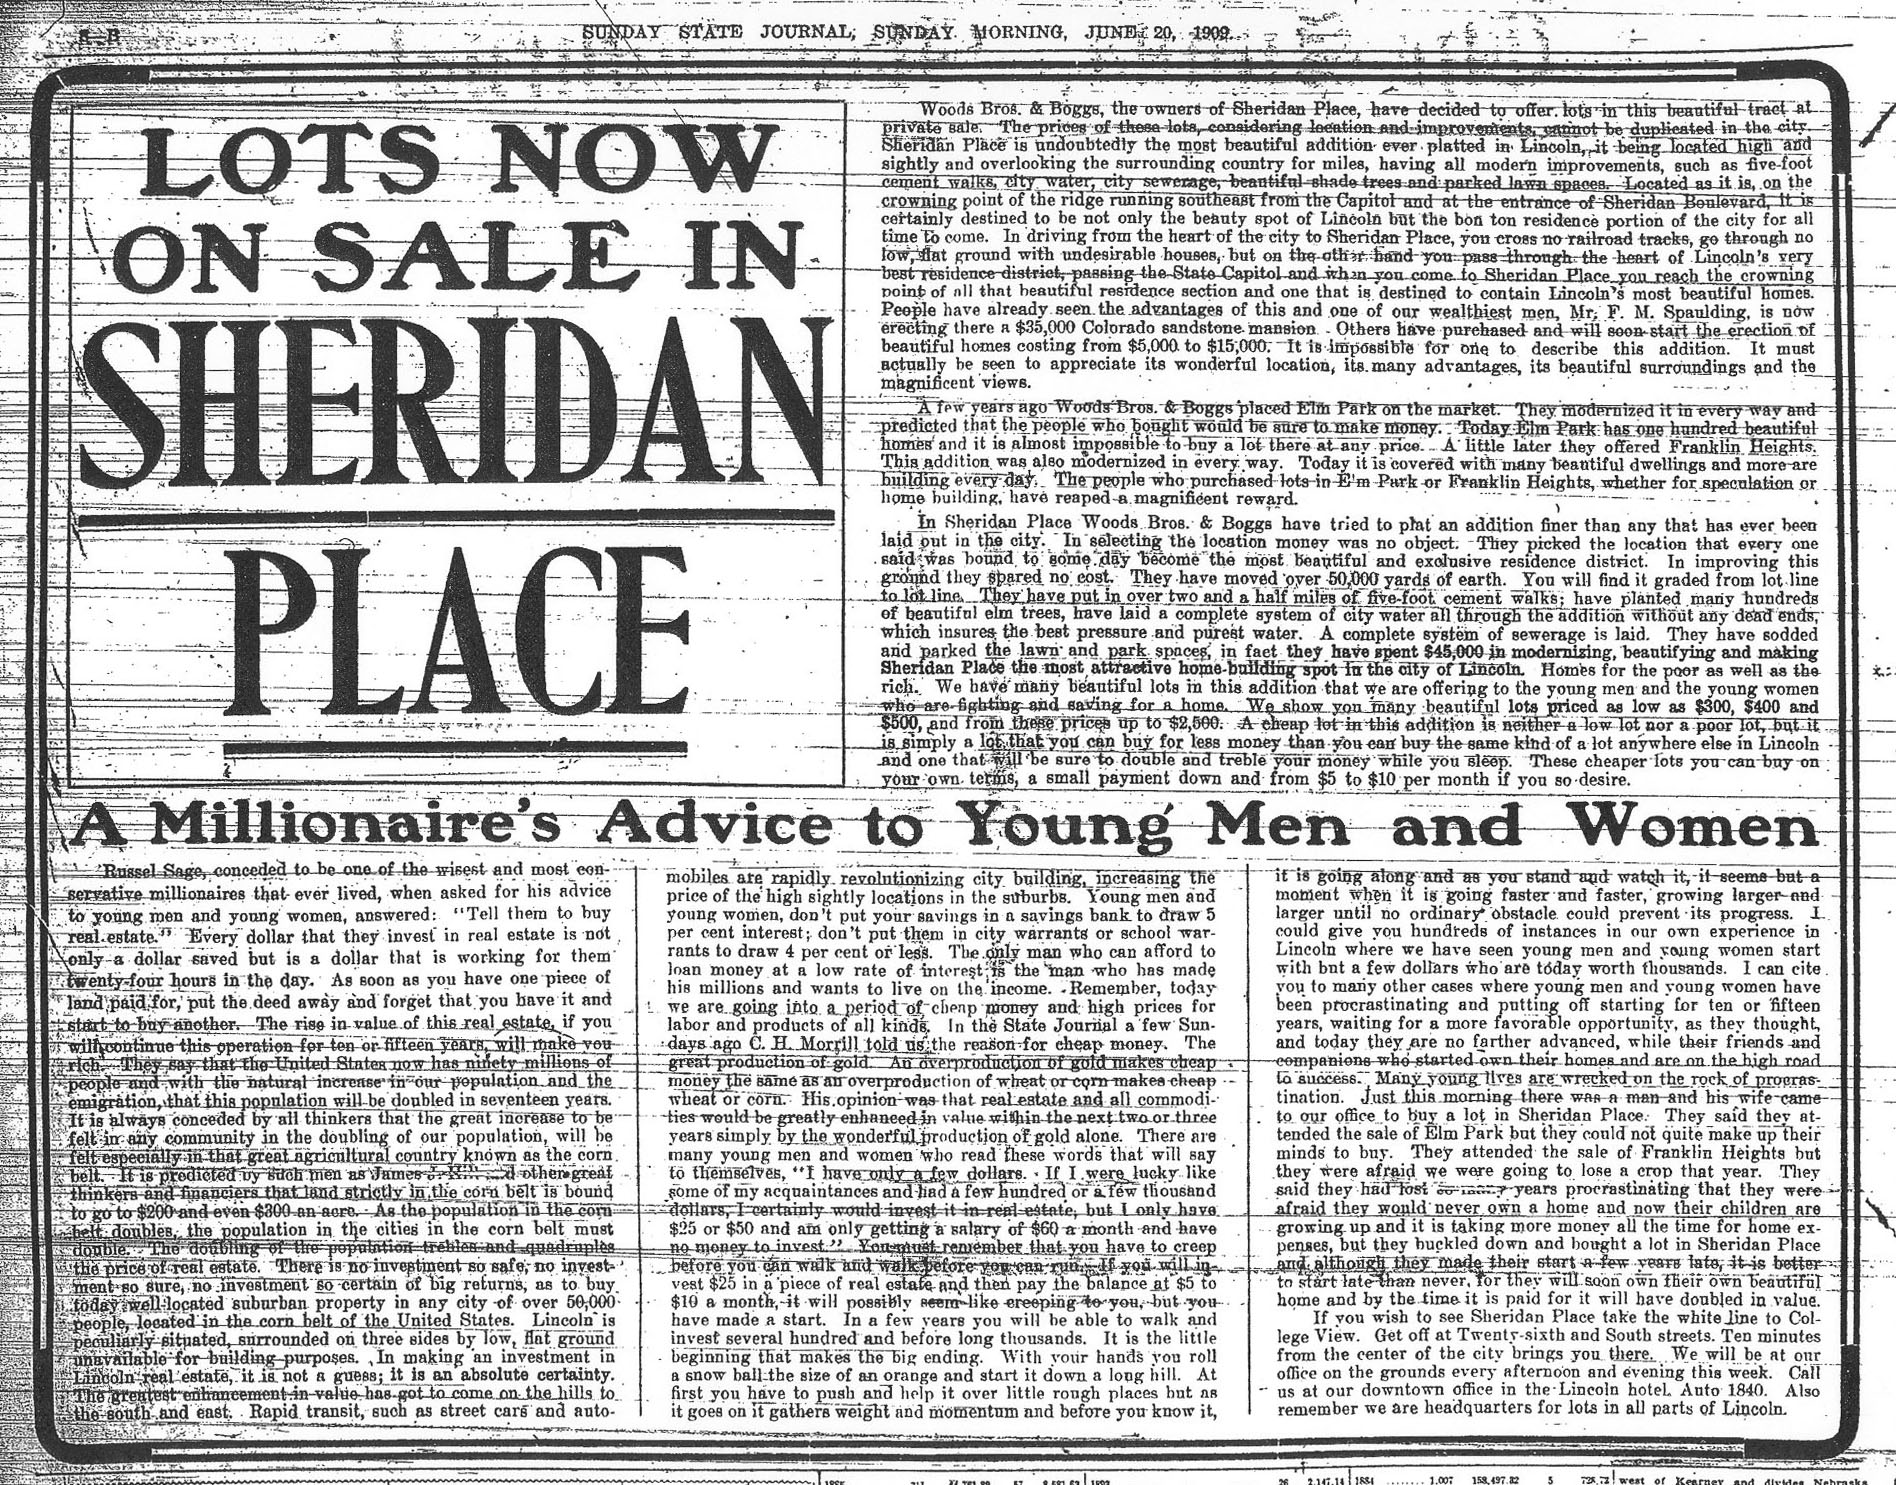 1909 Sunday State Journal Advertisement about Sheridan Boulevard Lots